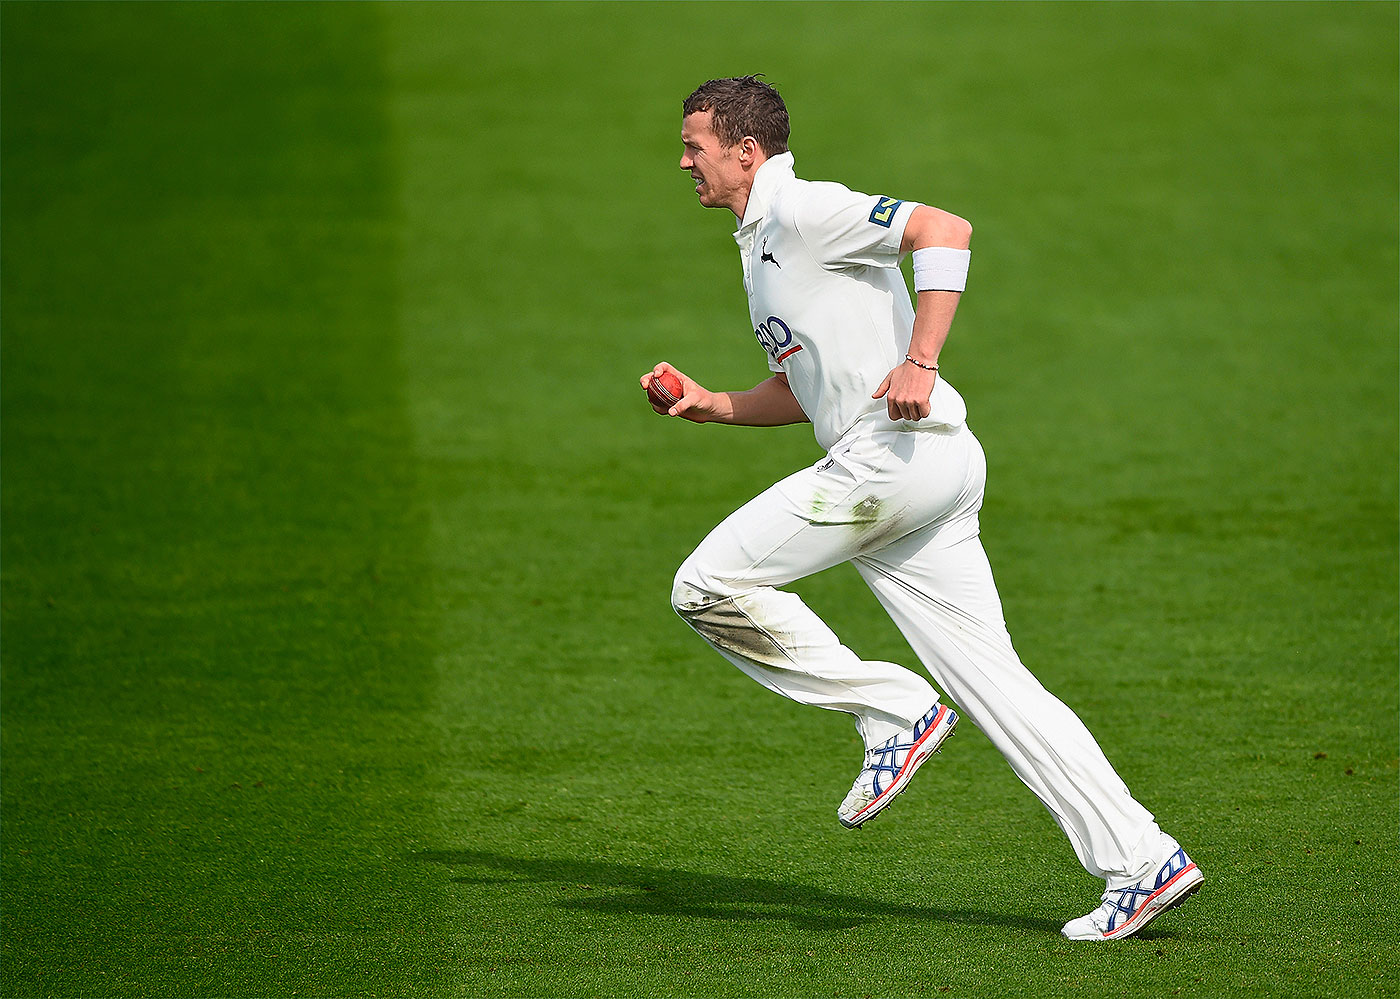 So-so summer: Siddle finished his Notts stint with 37 wickets at 31.48